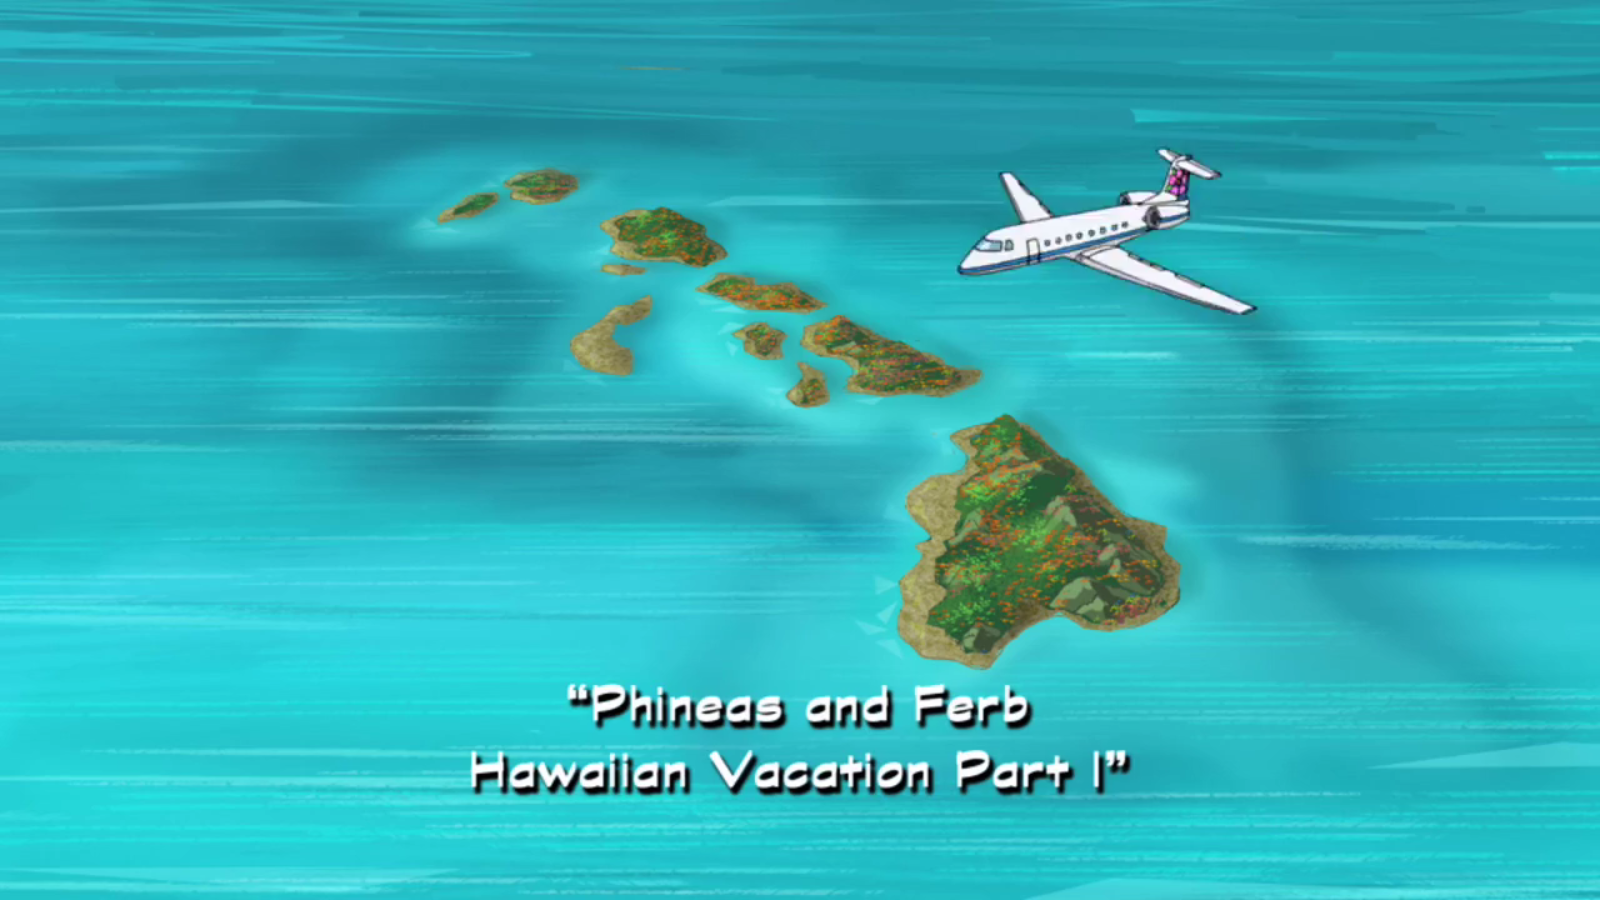 Phineas and Ferb Hawaiian Vacation